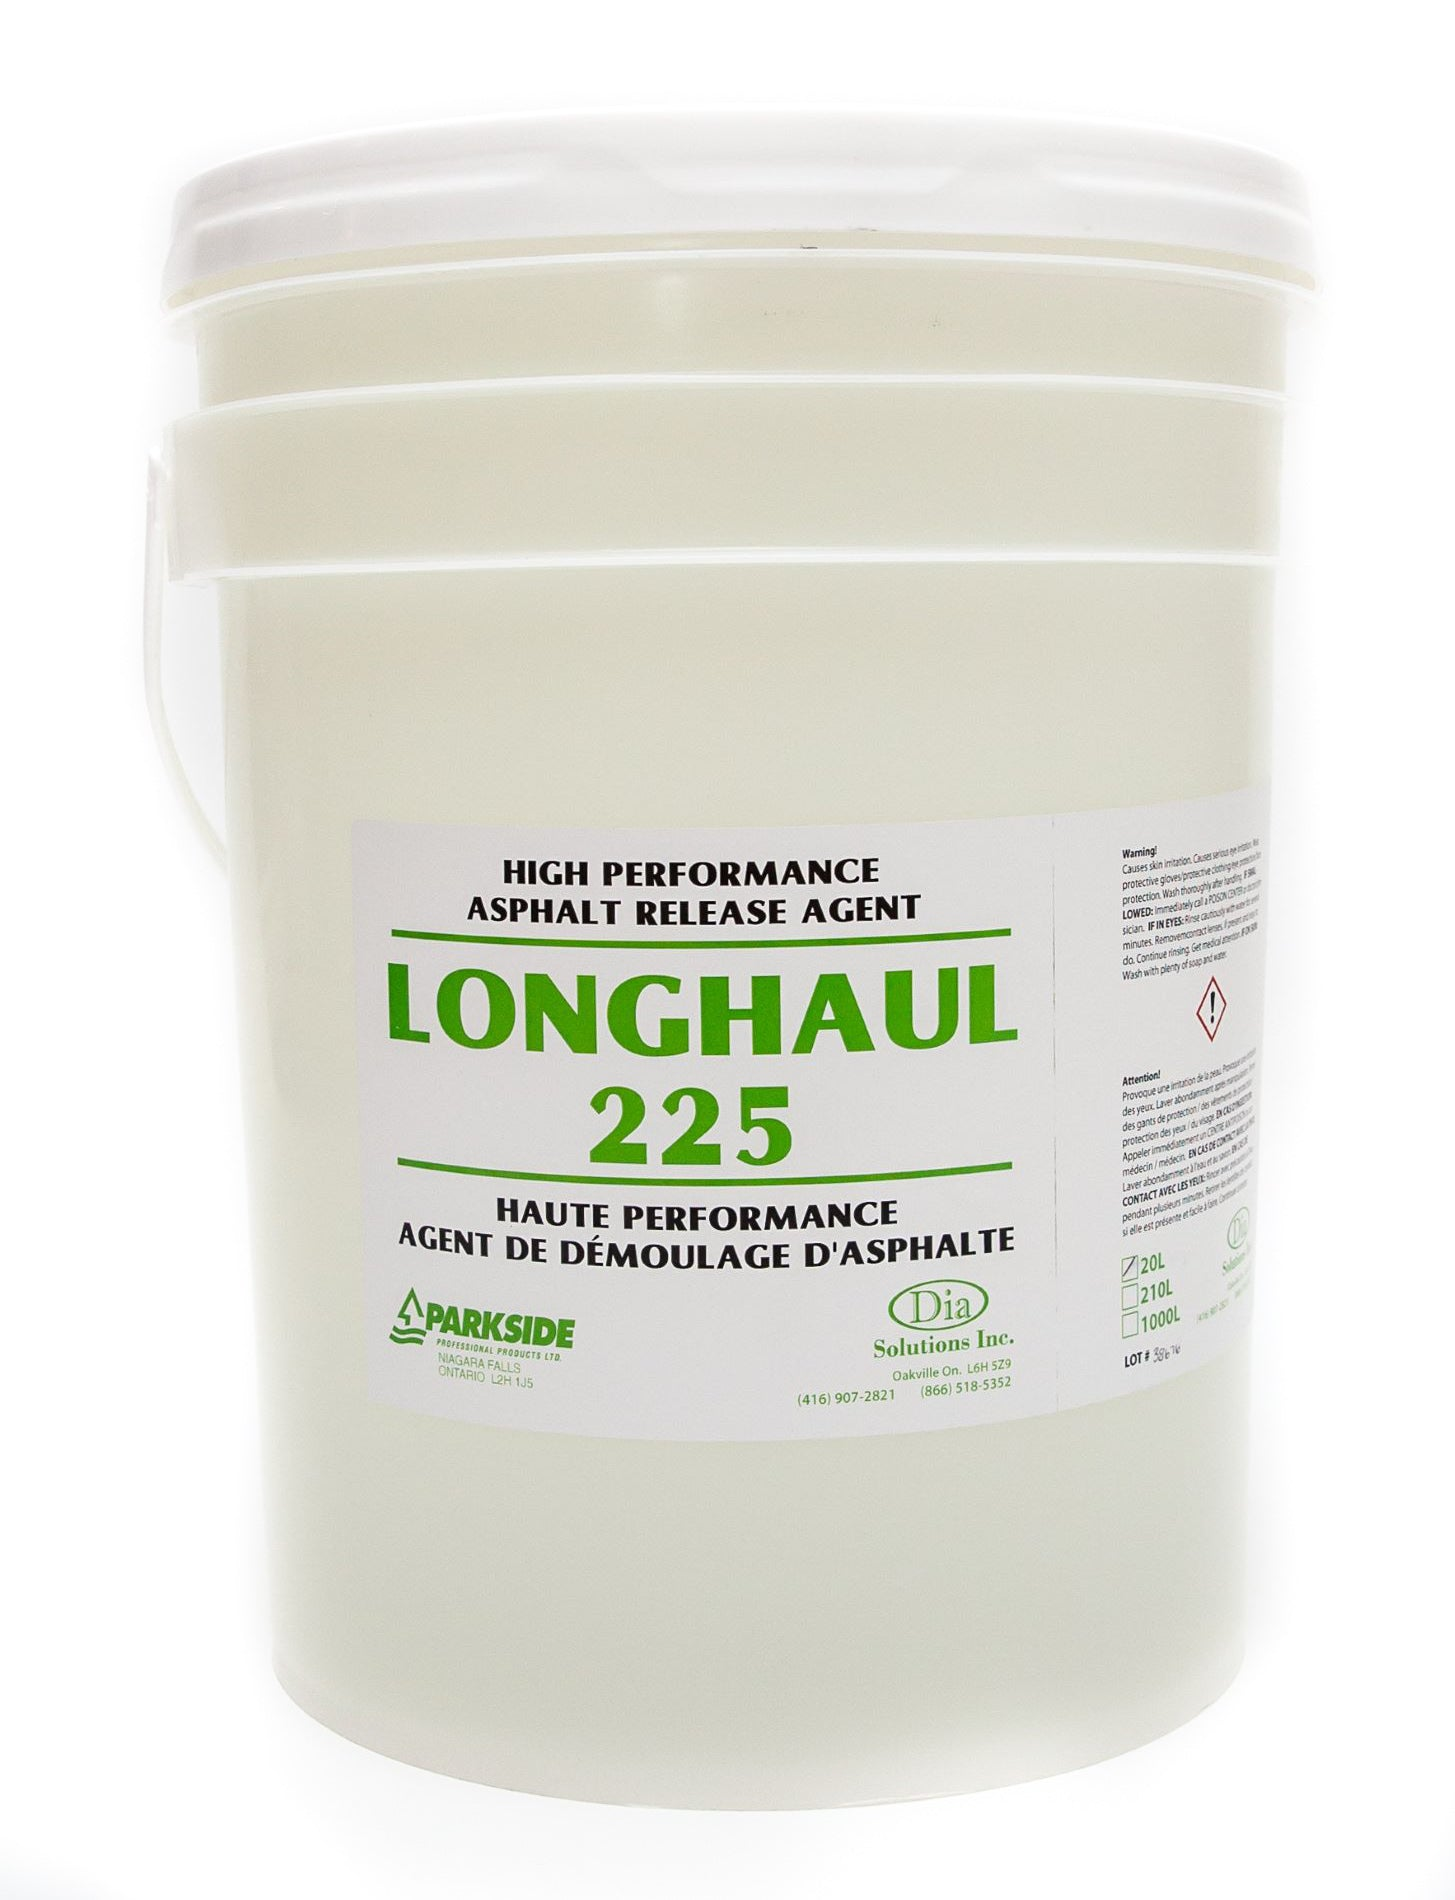 Longhaul 225 High Performance Asphalt Release Agent